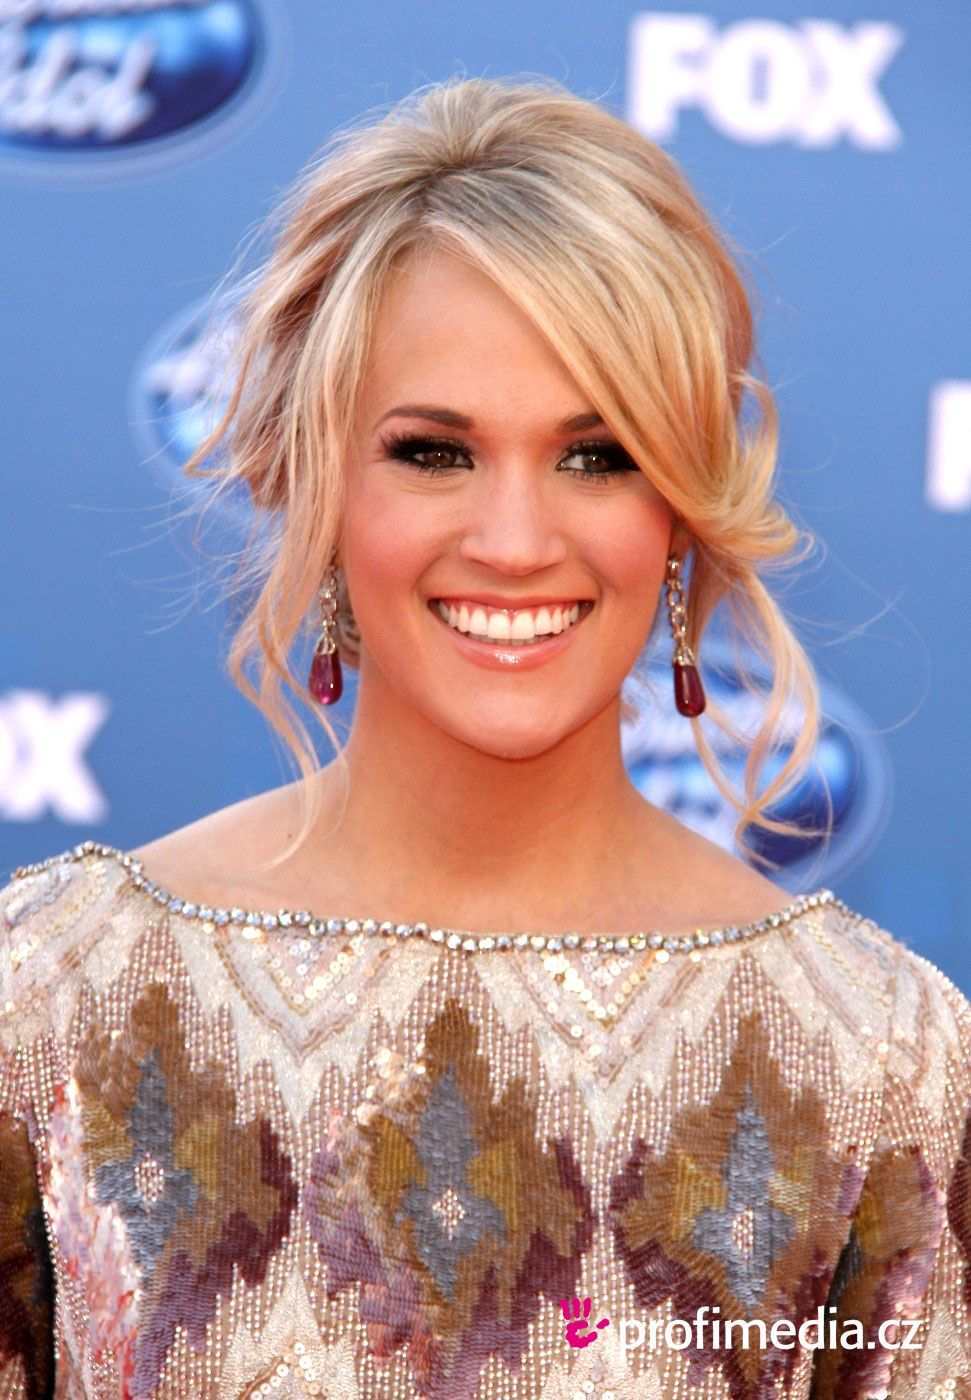 Carrie Underwood Loose Bun Updo with Bangs Carrie Underwood Loose Bun Updo with Bangs new images